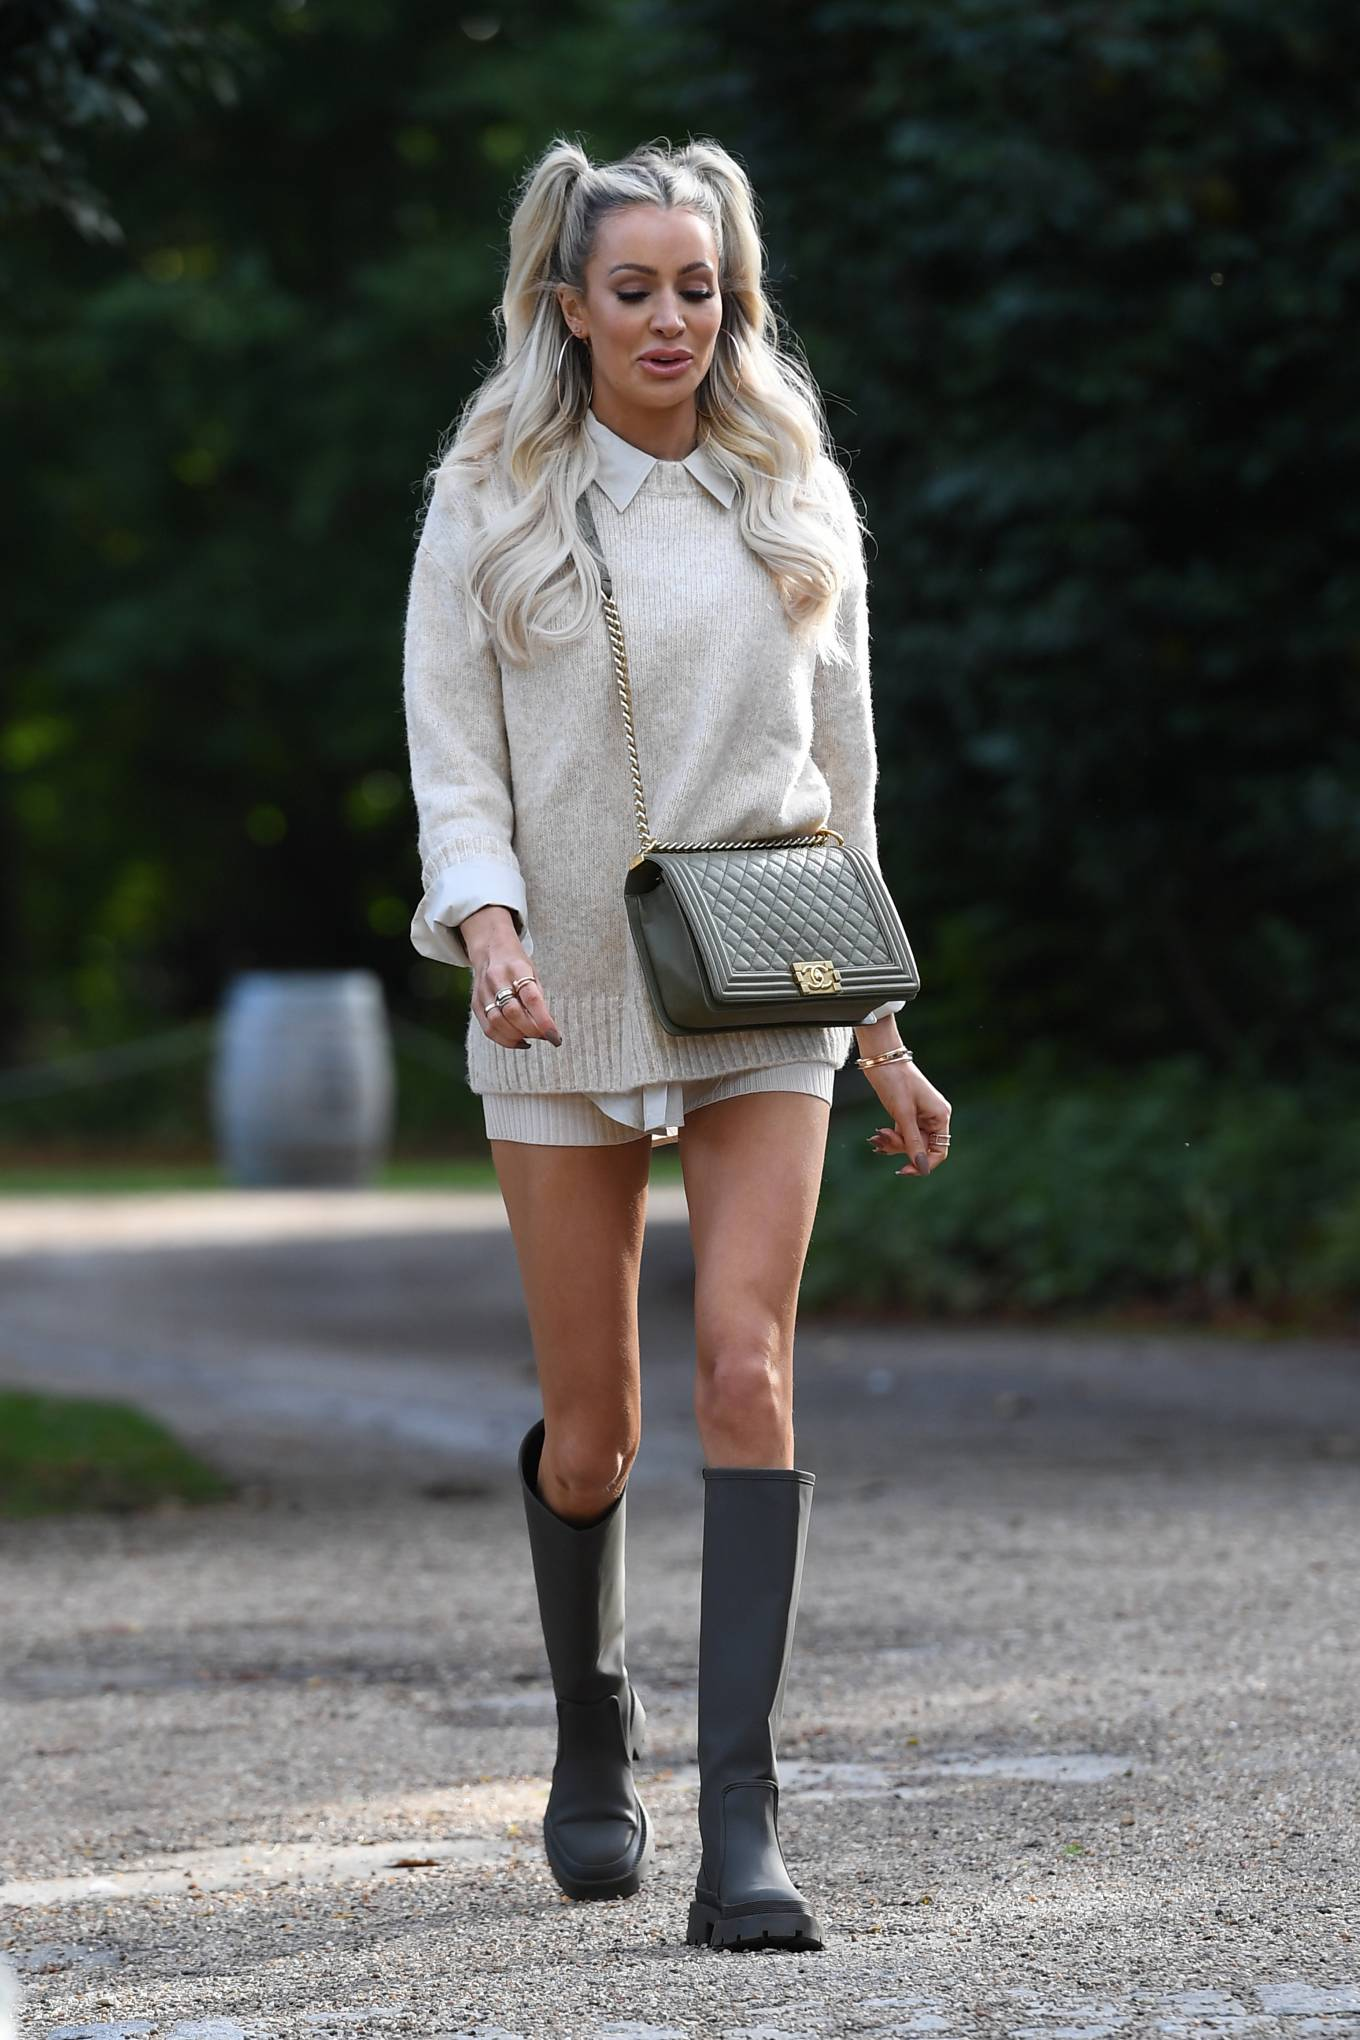 Olivia Attwood 2020 : Olivia Attwood – The Only Way is Essex TV Show filming in Essex-06